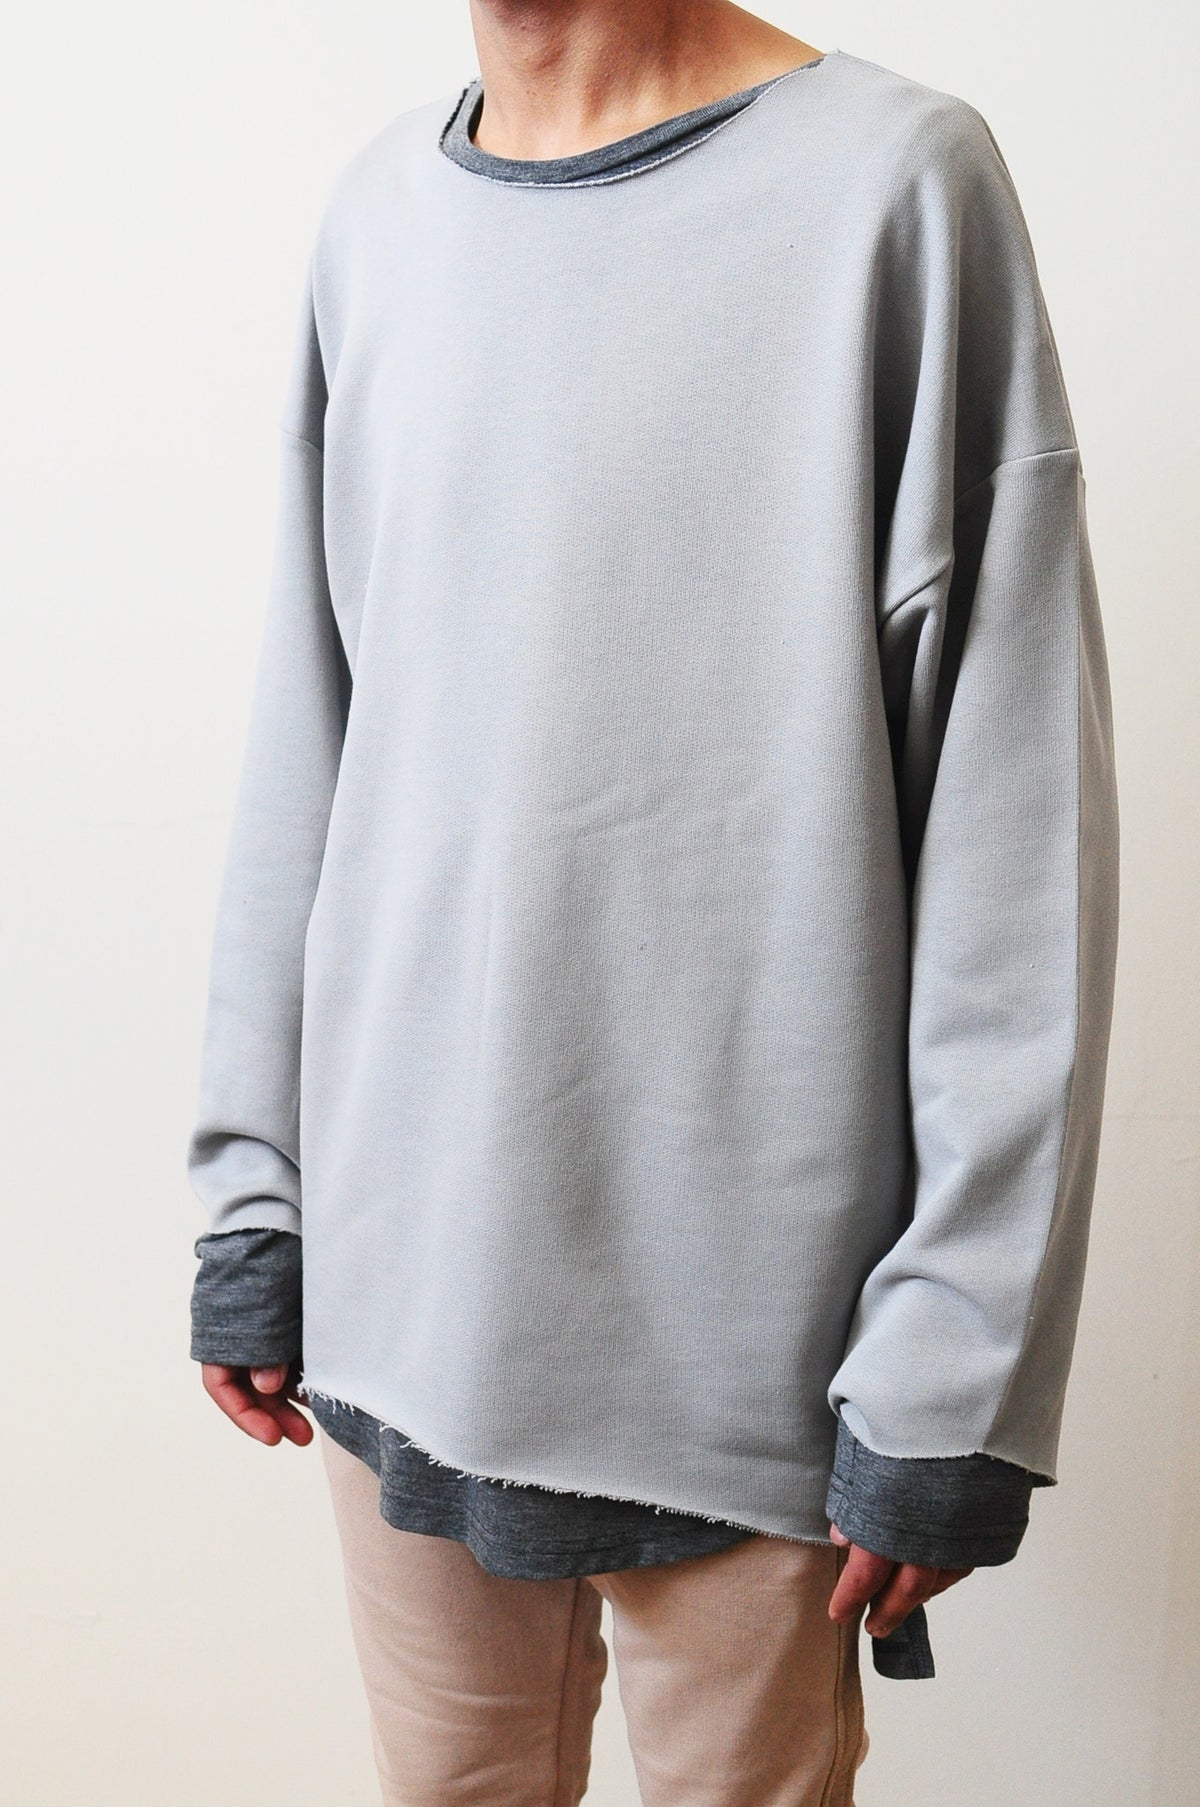 Men Distressed Stone Sweat Strapped Crewneck 3/4 Random Cut